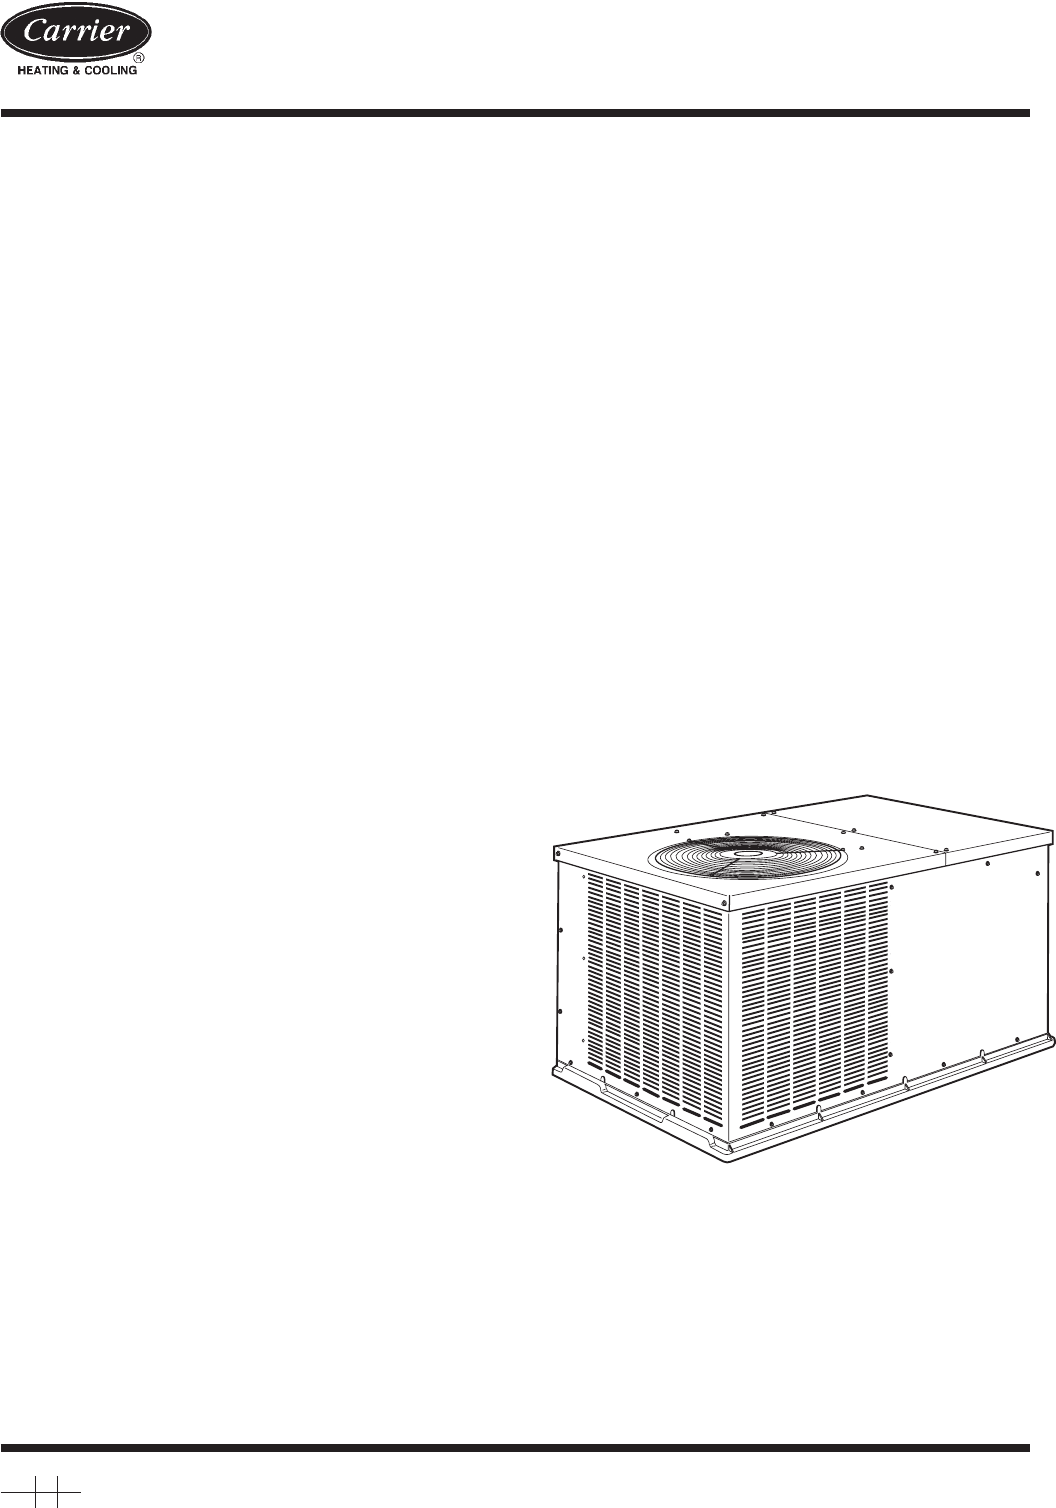 Carrier Air Conditioner 50zh024 060 User Guide